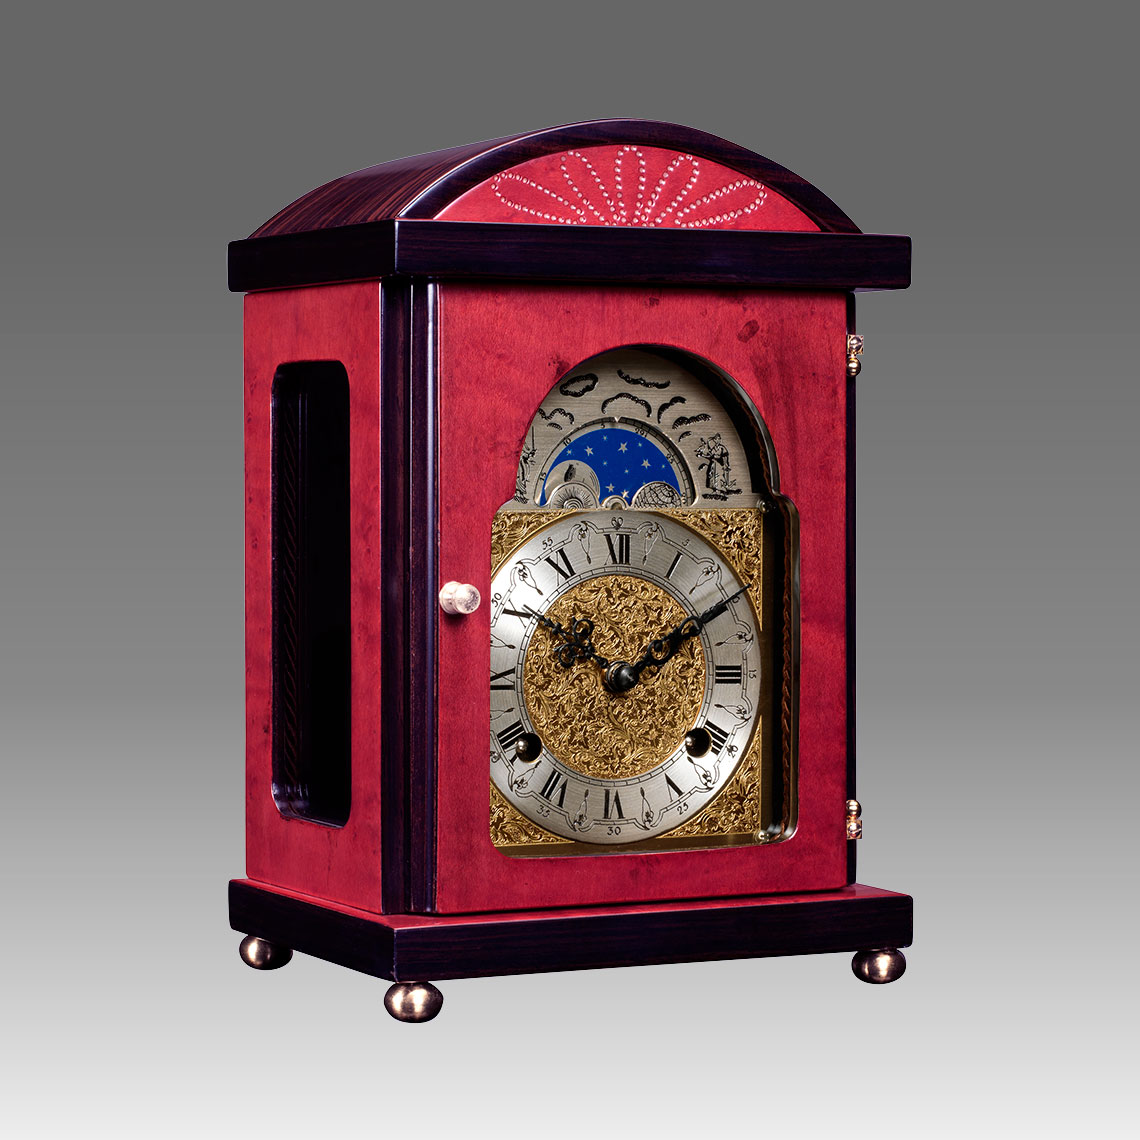 Mante Clock, Table Clock, Cimn Clock, Art.340/6 Erable red wood - Bim Bam melody on Bells, eatched decorated moon fase dial